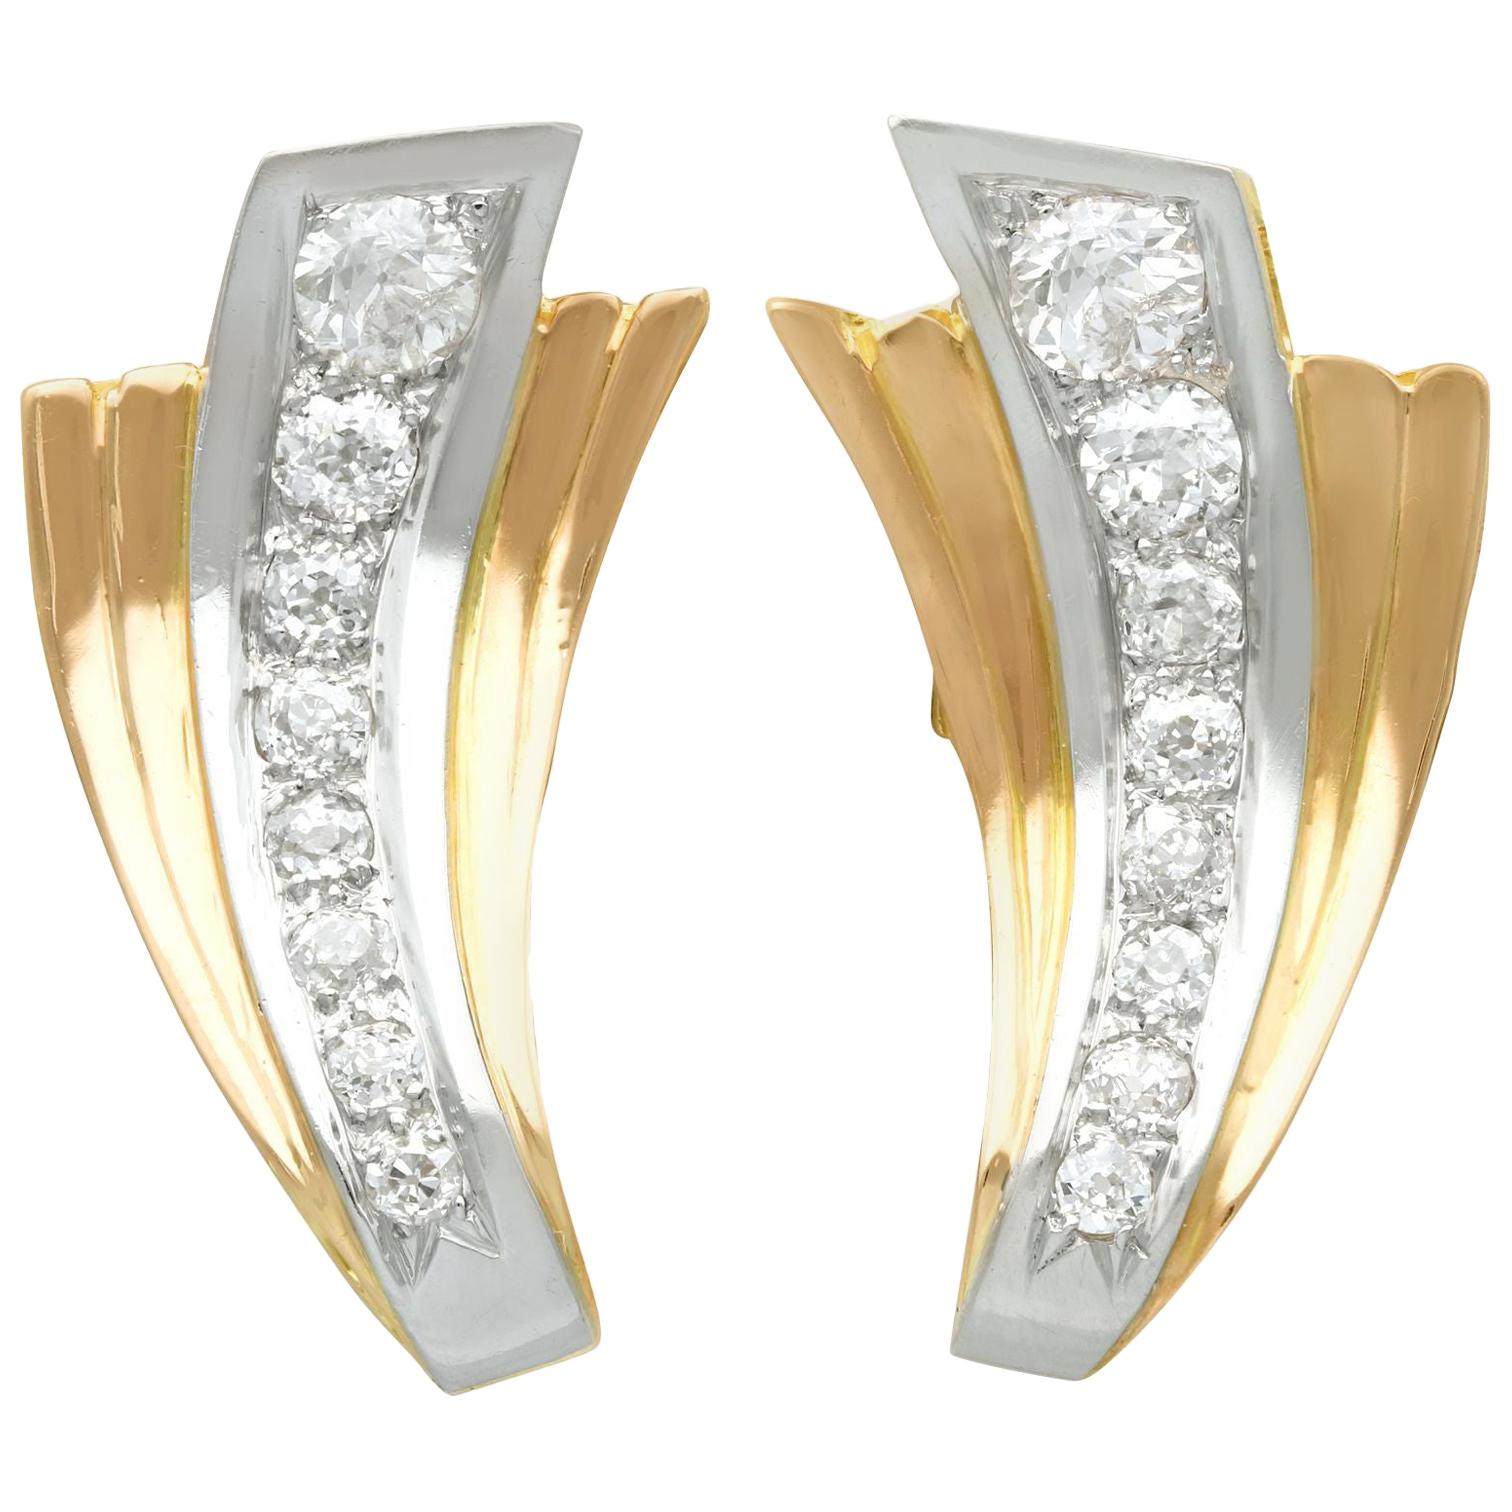 Vintage French Art Deco 1940s 4.06 Carat Diamond and Yellow Gold Earrings